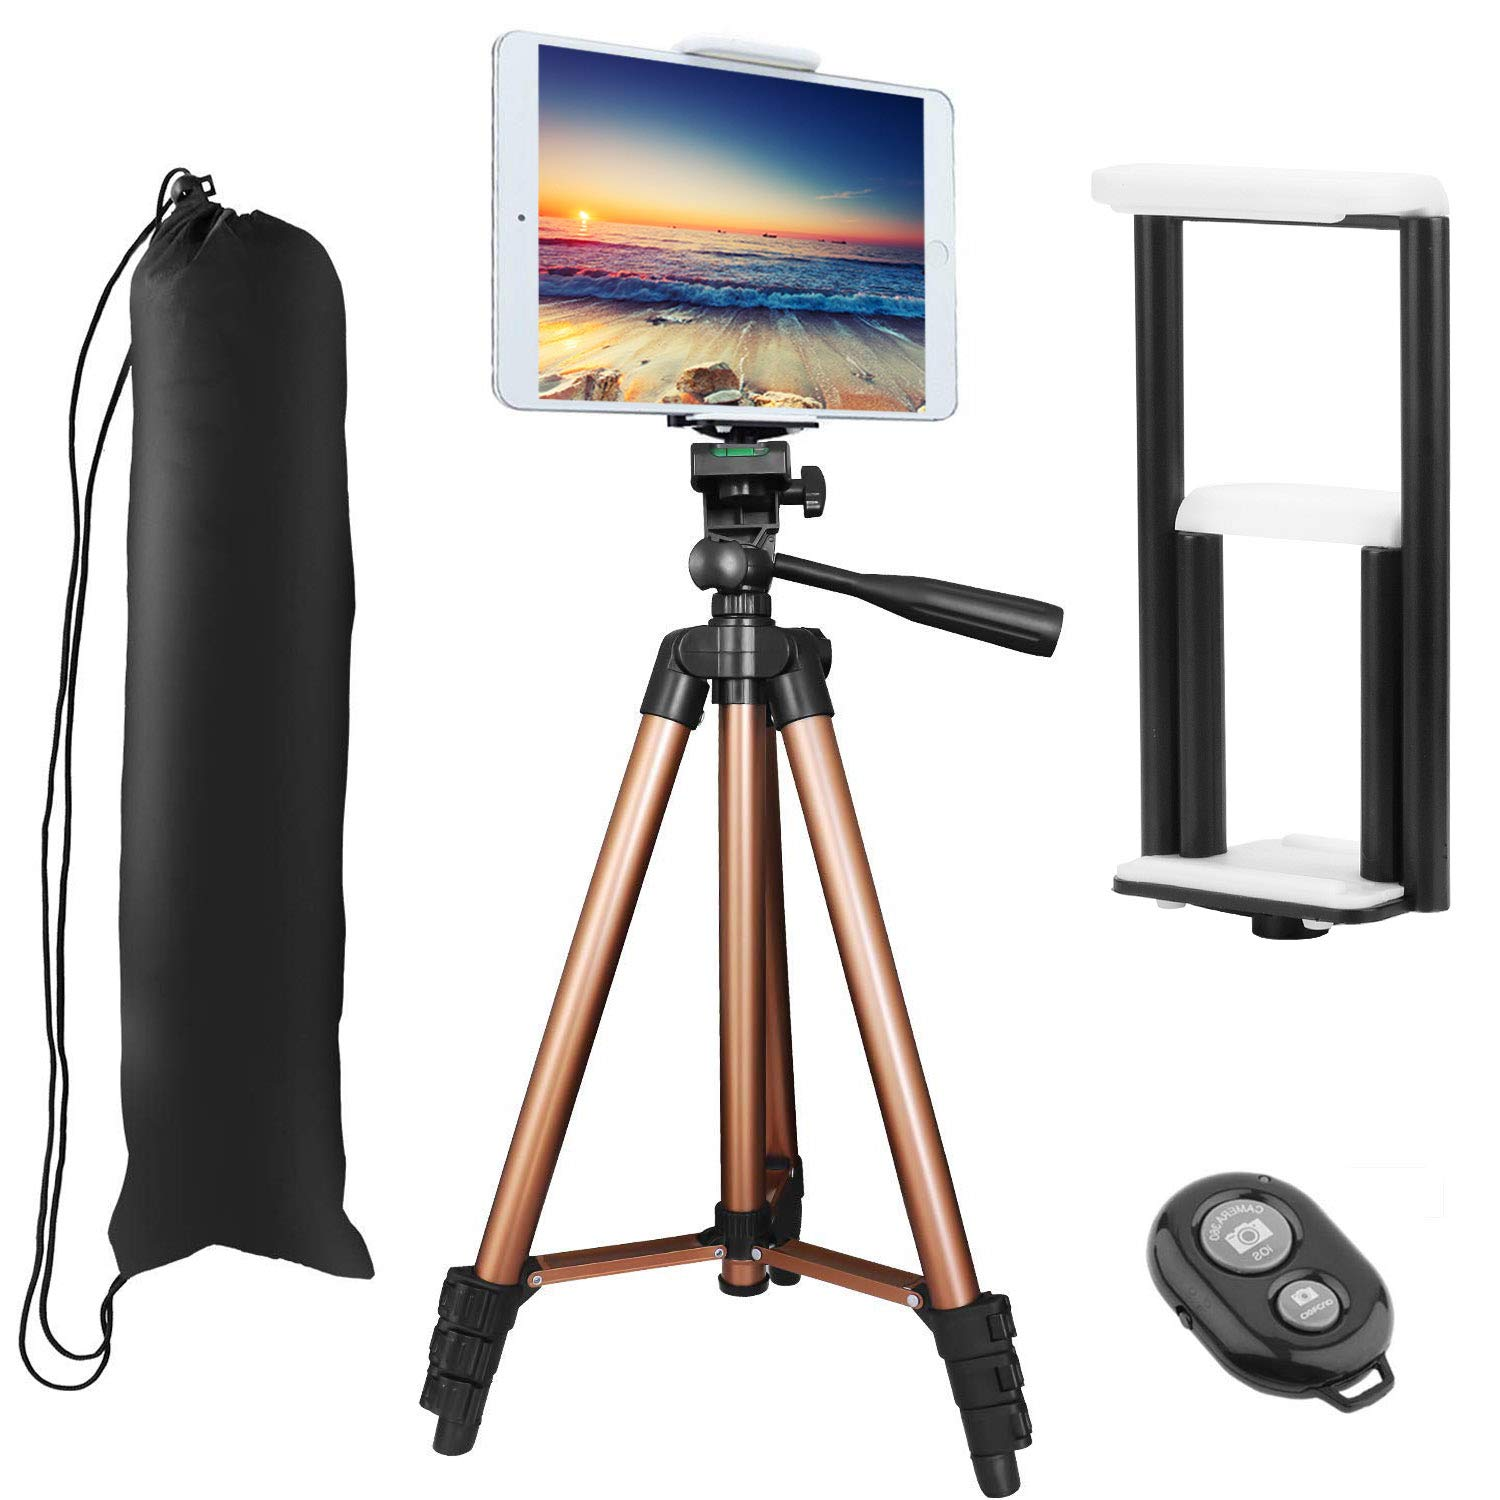 PEYOU Compatible for iPad iPhone Tripod,50 inch Lightweight Aluminum Phone Camera Tablet Tripod + Wireless Remote + 2 in 1 Mount Holder Compatible for Smartphone (Width 2-3.3''),Tablet (Width 4.3-7.2'')